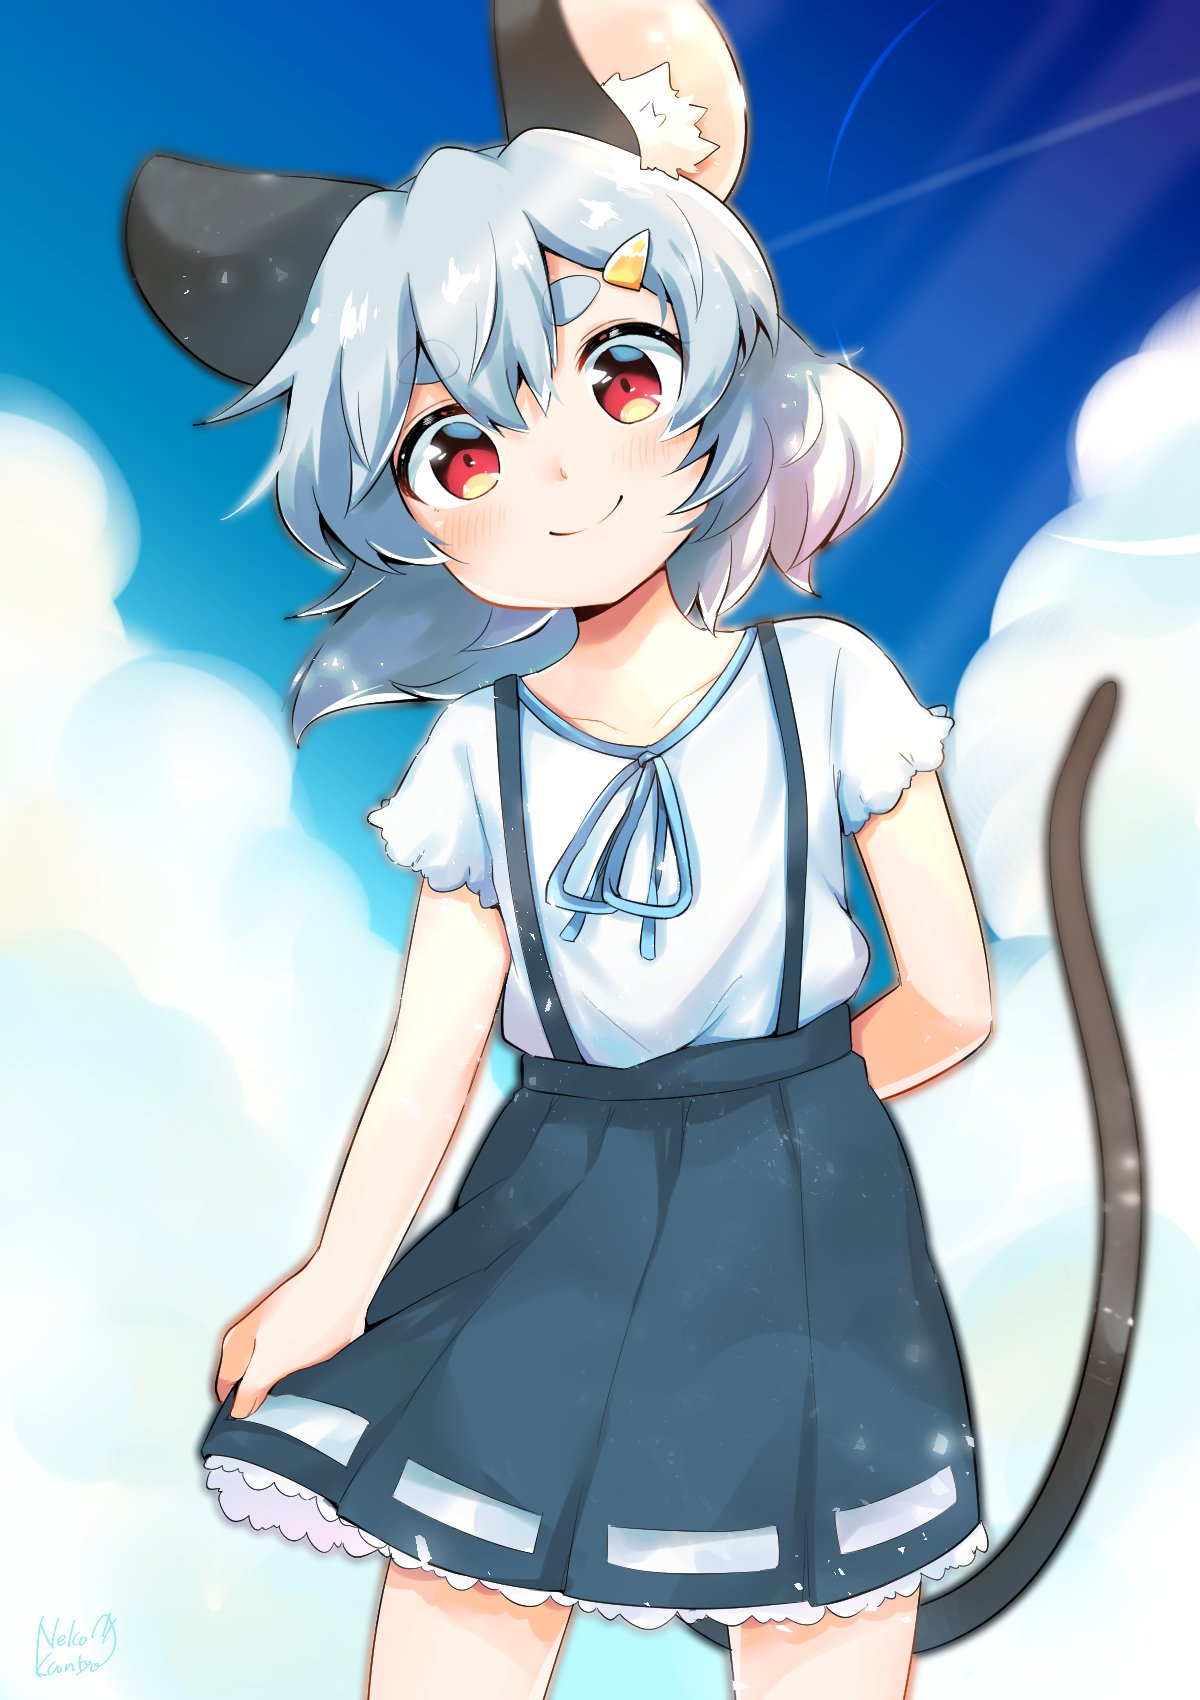 1girl alternate_costume animal_ears arm_behind_back bangs blouse blue_sky closed_mouth clouds commentary_request condensation_trail cowboy_shot frilled_skirt frilled_sleeves frills grey_hair grey_skirt hair_between_eyes hair_ornament hairpin highres looking_at_viewer mouse_ears mouse_girl mouse_tail nazrin red_eyes short_hair signature skirt skirt_pull sky smile solo suspender_skirt suspenders tail take_no_ko_(4919400) thick_eyebrows touhou white_blouse